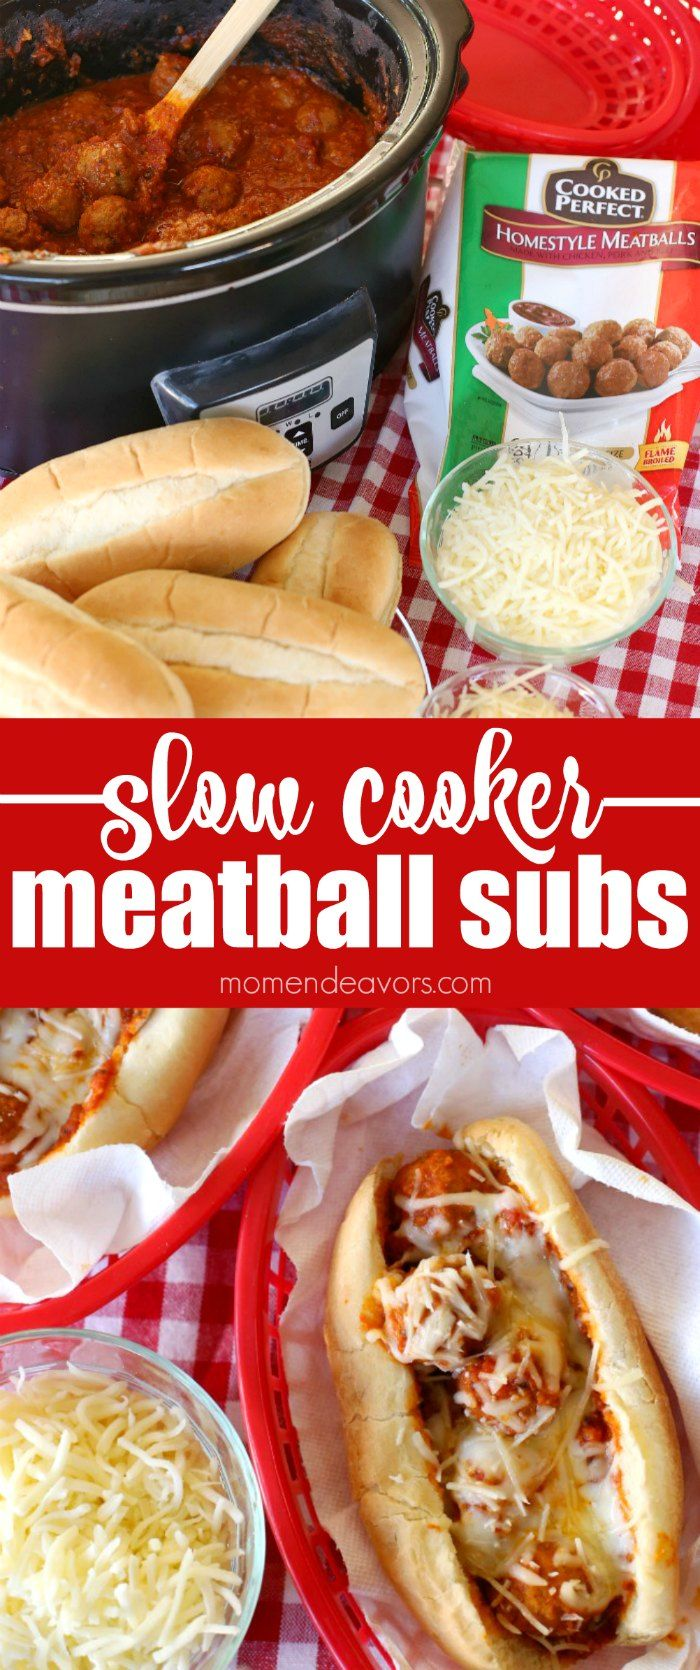 Slow Cooker Meatball Subs - this tasty & hearty dish is easy to make in the crock pot without heating up the whole house! @CookedPerfect AD